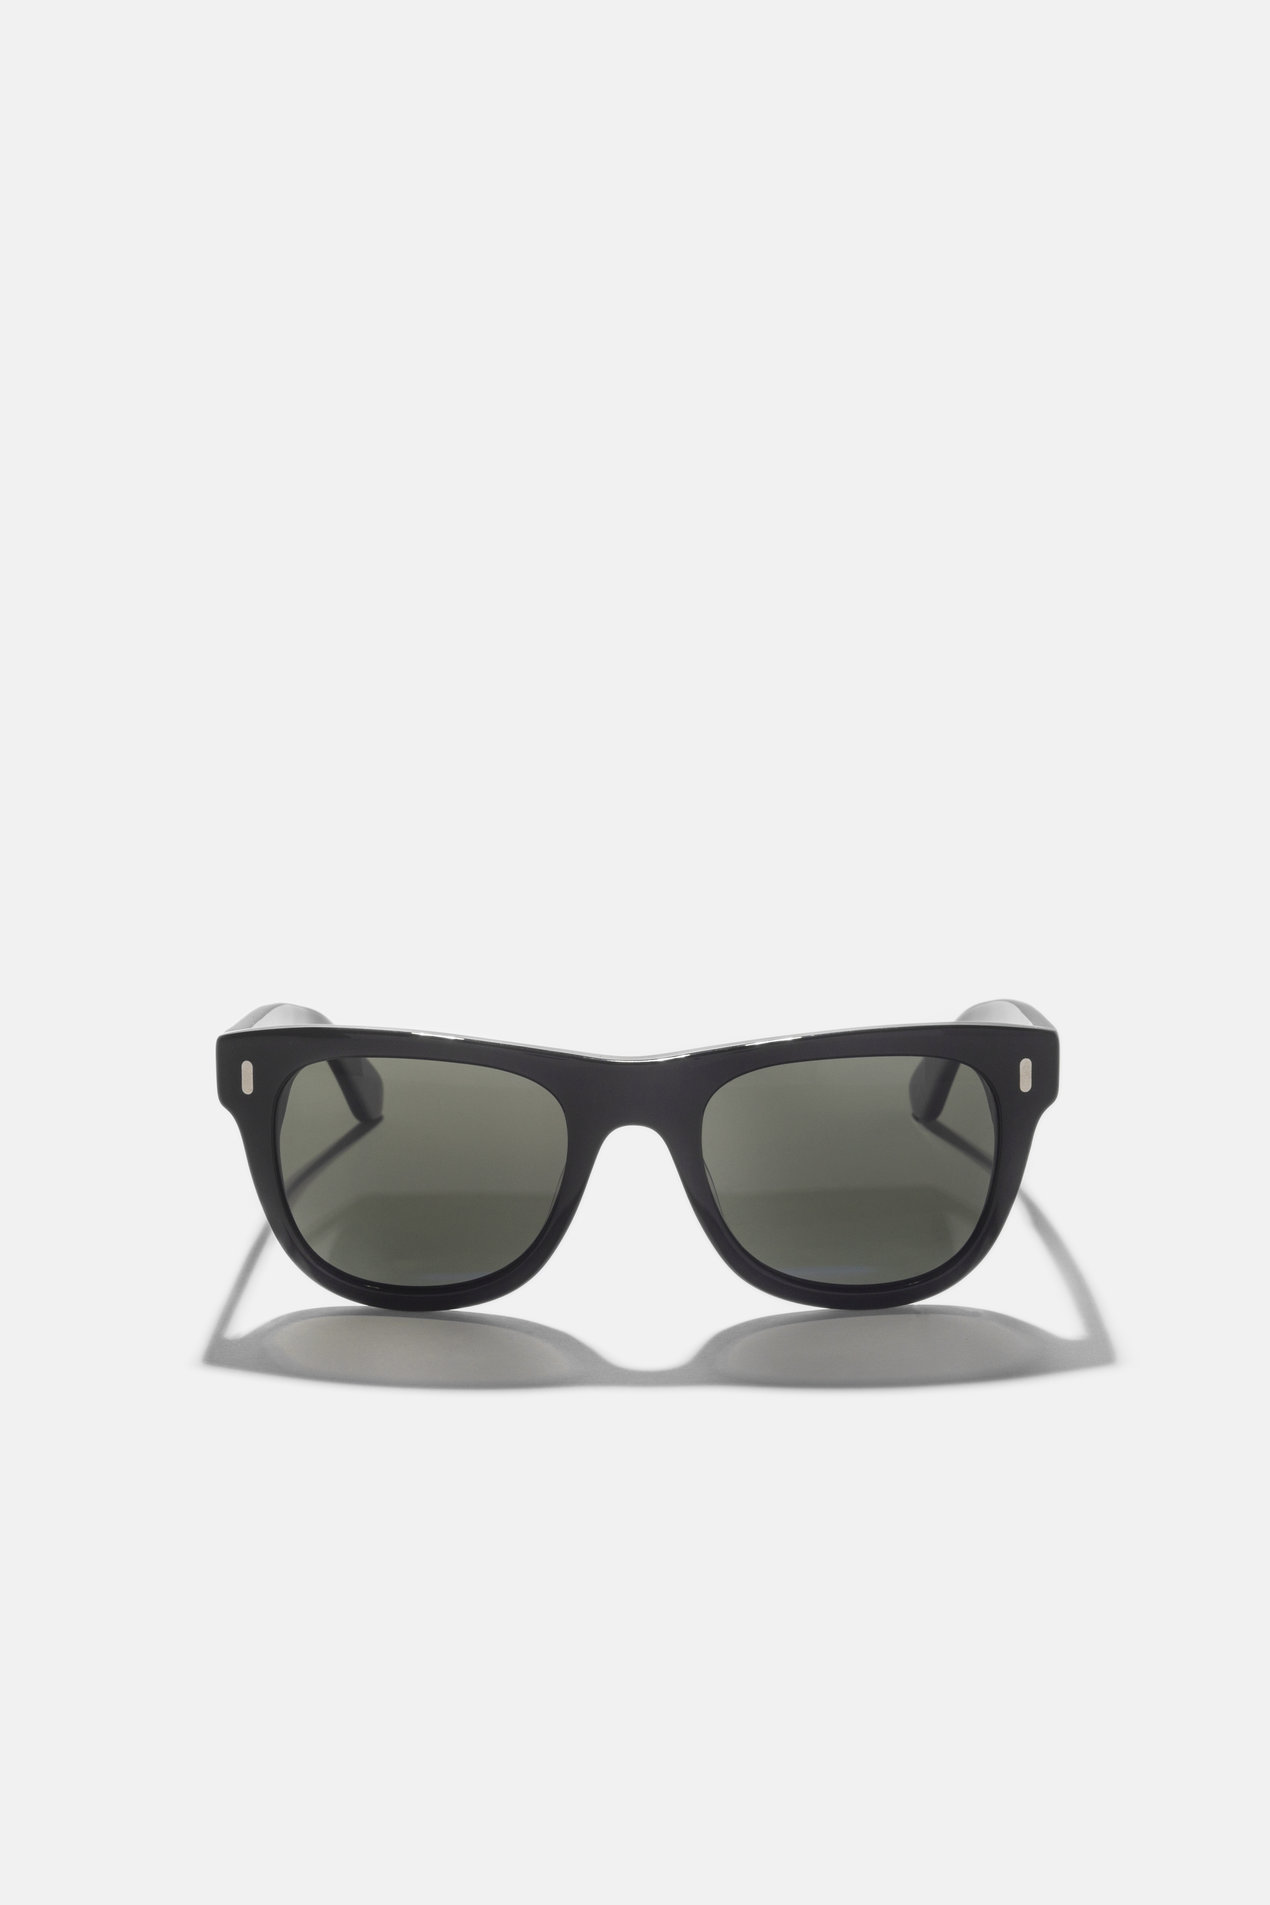 Shop Sunglasses | Saturdays NYC